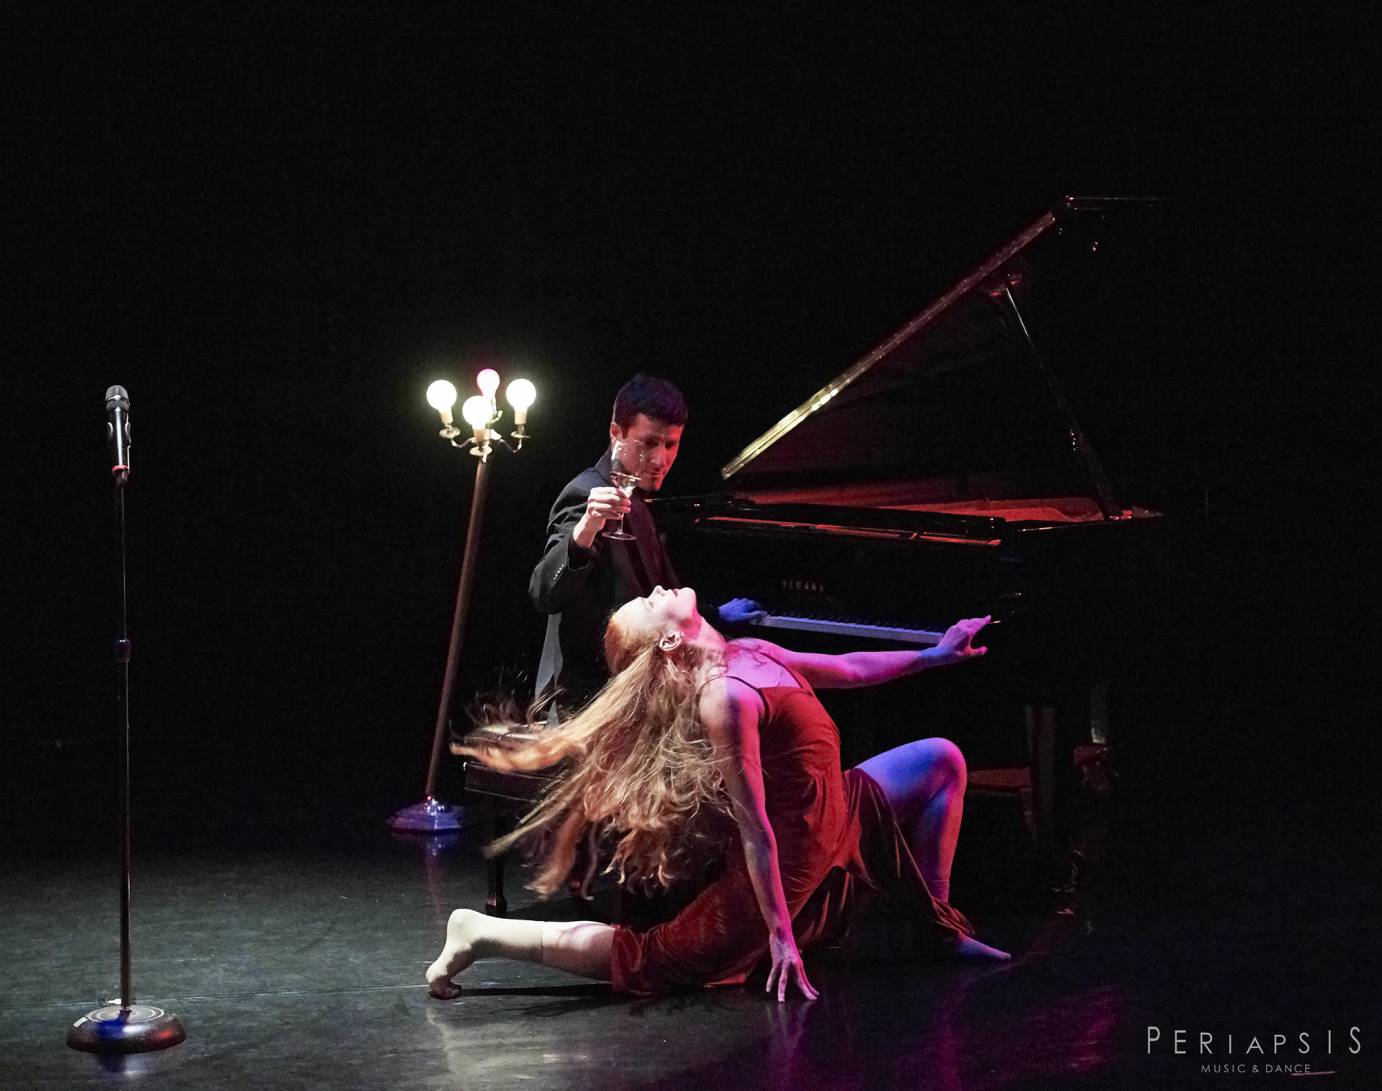 A man at a piano offers a lunging woman wine